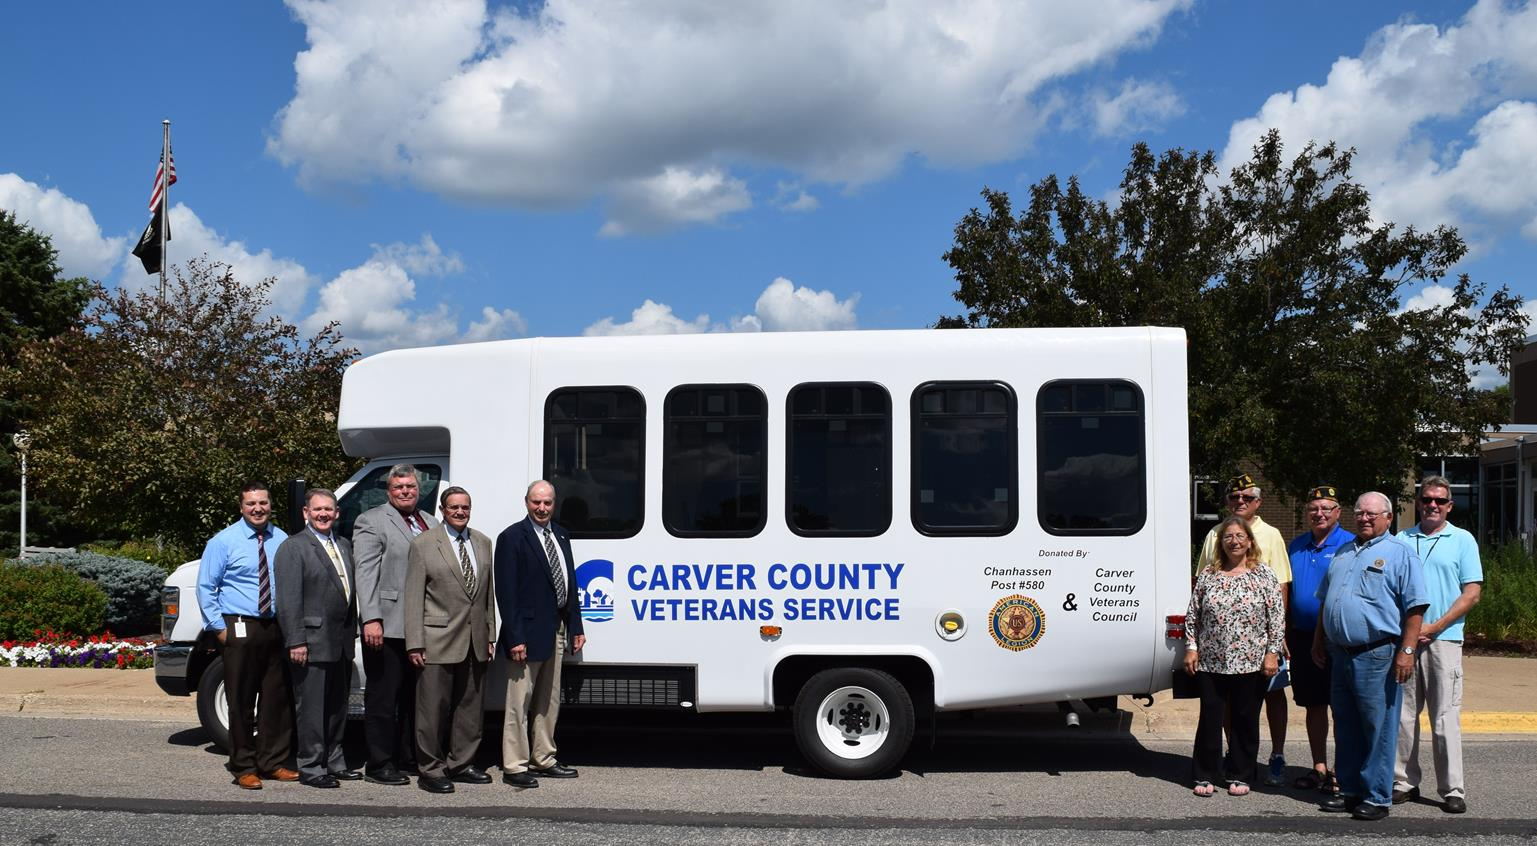 Veterans Services Bus